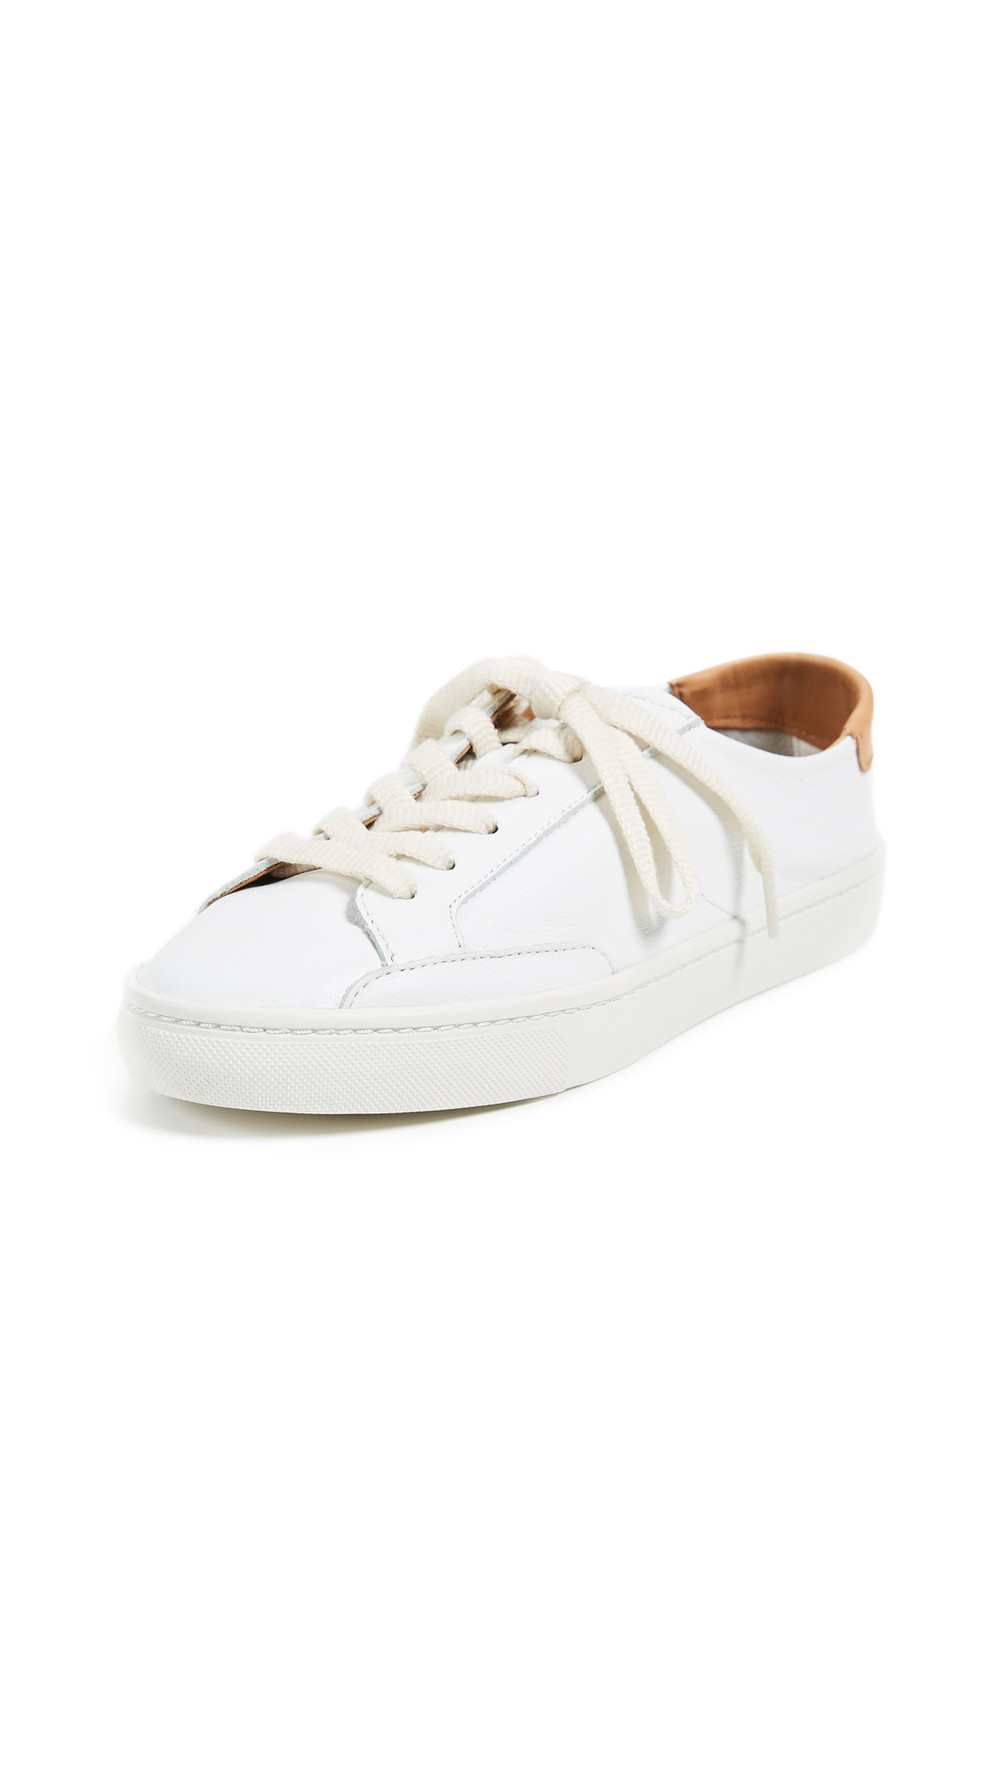 Soludos Ibiza Classic Lace Up Sneakers in white